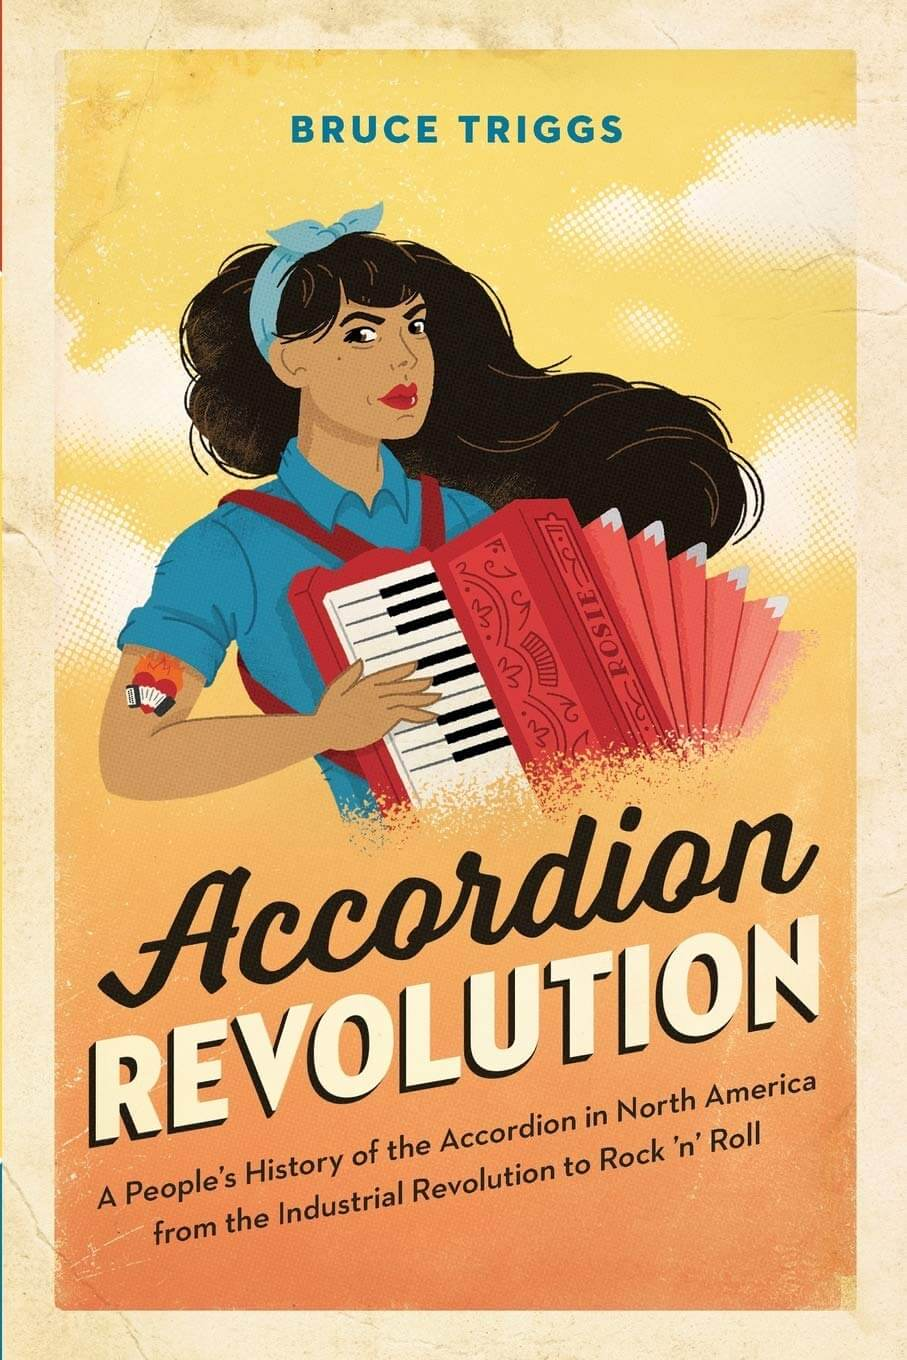 Accordion Revolution Book - Bruce Triggs